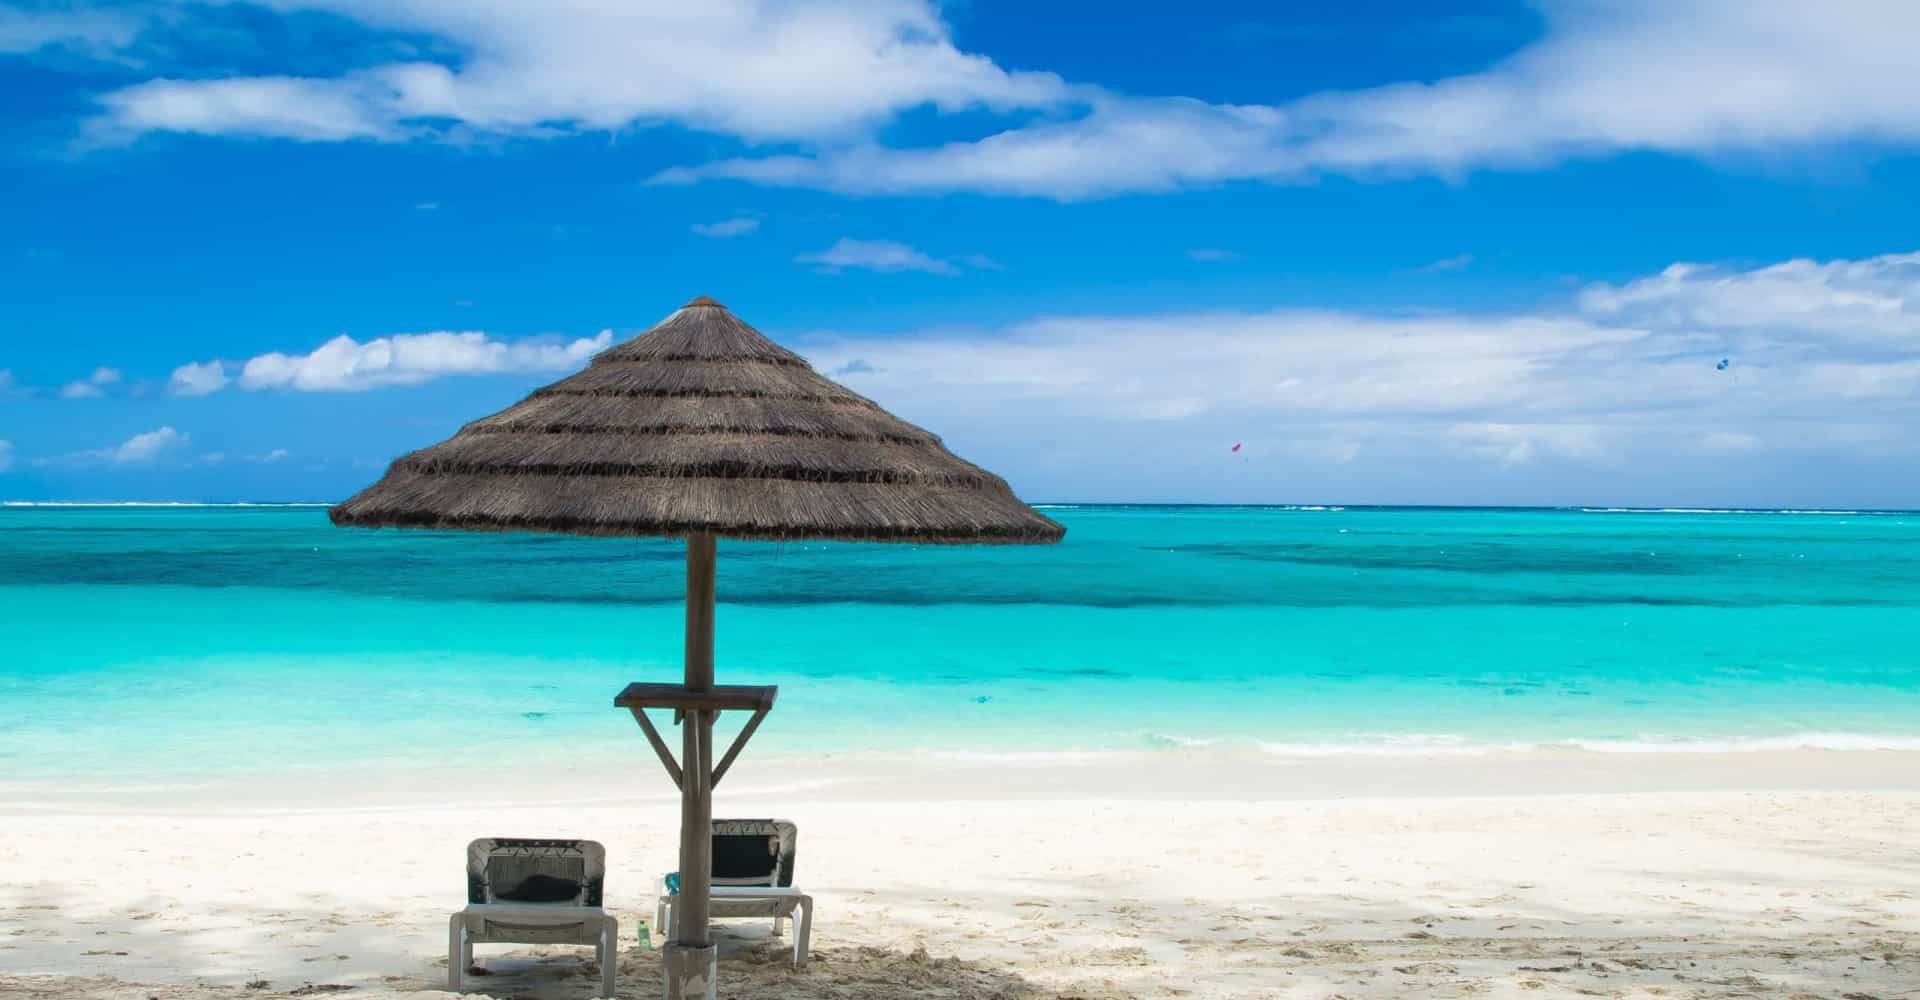 Discover the most highly rated beaches in the world